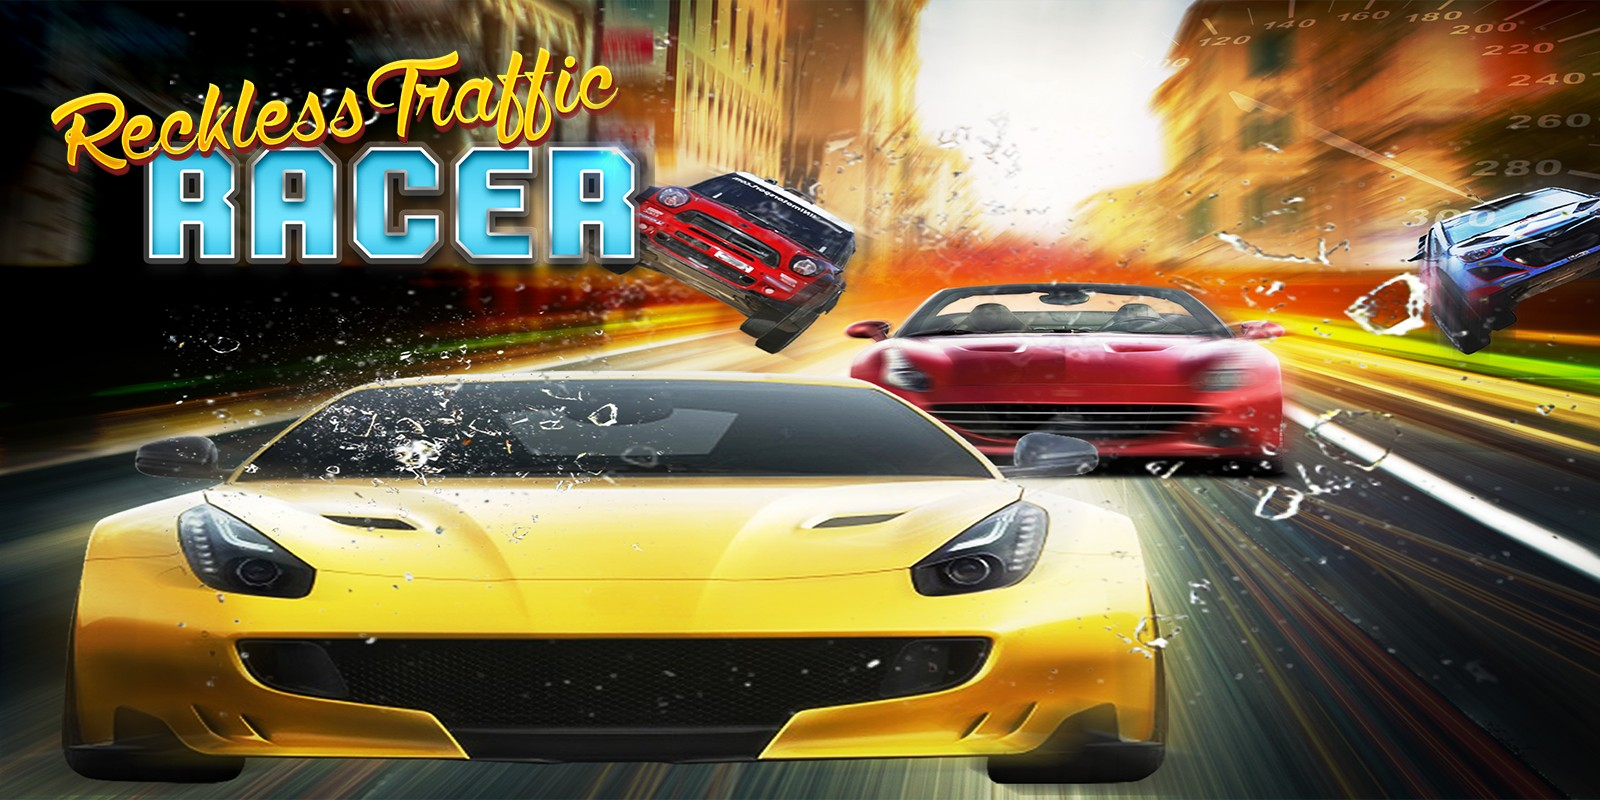 Reckless Traffic Racer - Complete Unity Project